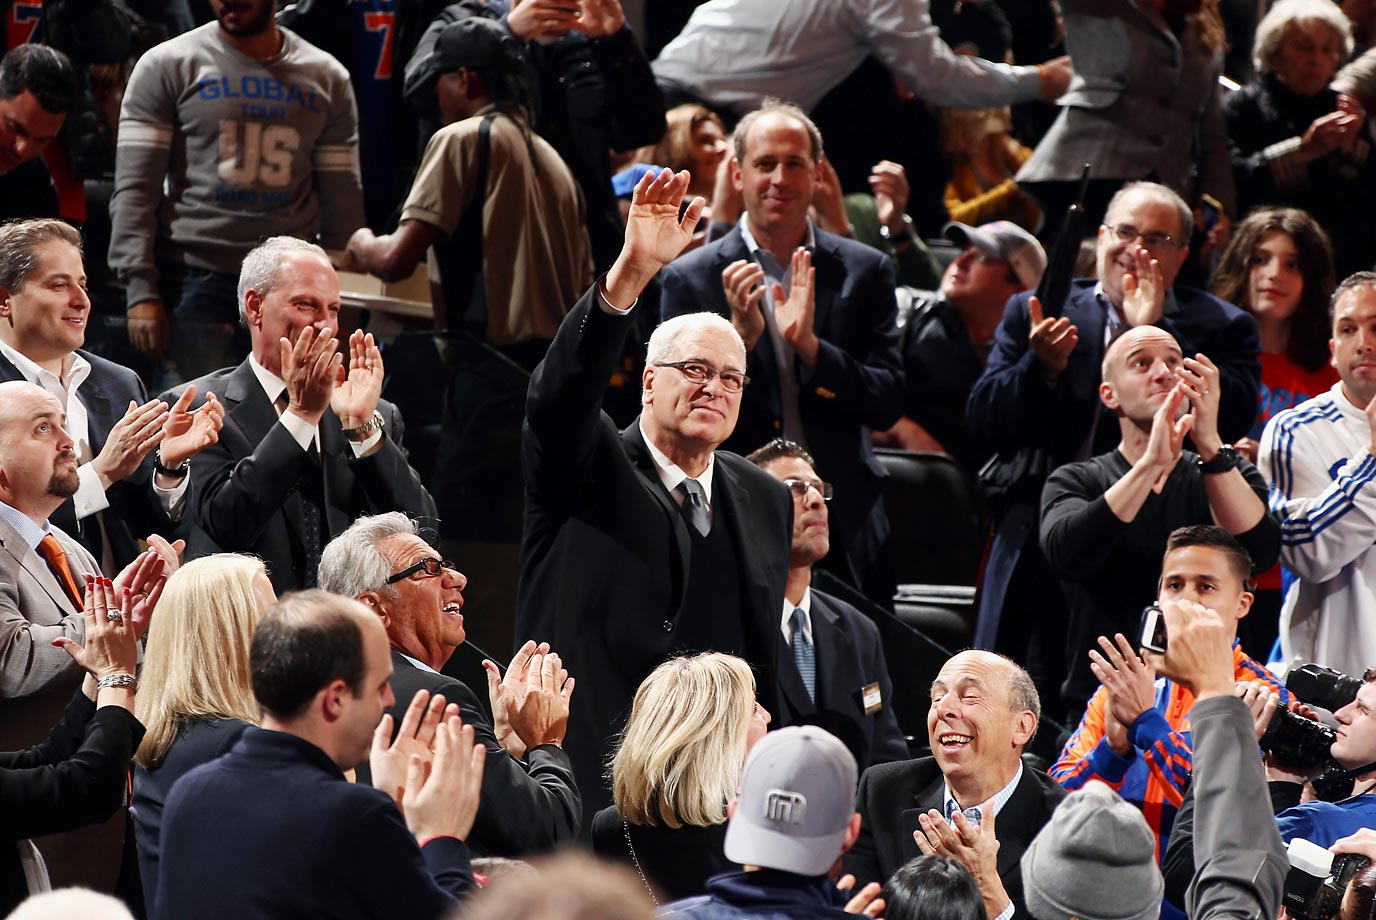 In March, the New York Knicks made a tremendous front office splash, bringing 11-time NBA champion head coach Phil Jackson on as team president. Jackson, who as a player was a member of the Knicks' only two title-winning teams in 1970 and '73, went 1,155-485 in 20 seasons coaching the Bulls and Lakers. The struggling Knicks, fighting for the East's final playoff seed, hoped he would be the man to right their ship.